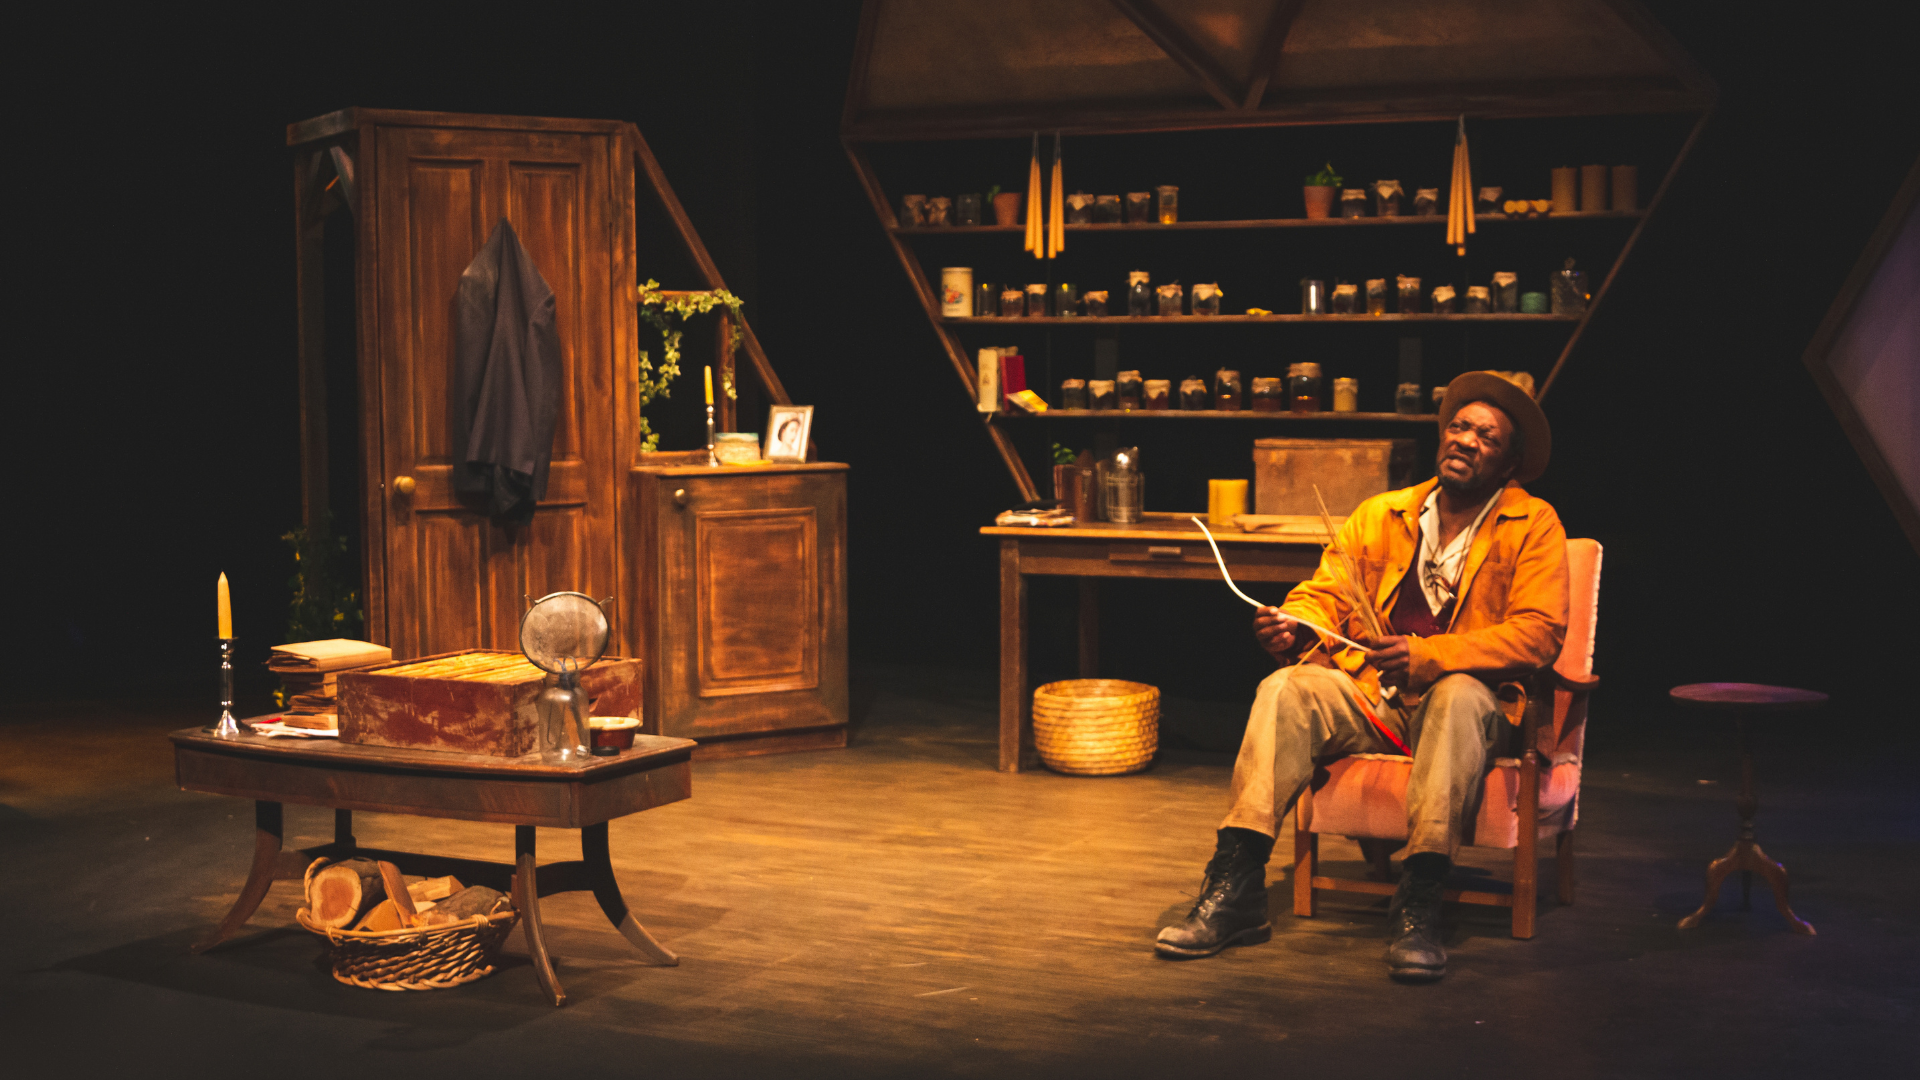 The Honey Man Production Photo: Honey Man (Everal Walsh) sits in an armchair in his house, surrounded by bee keeping equipment and jars of honey